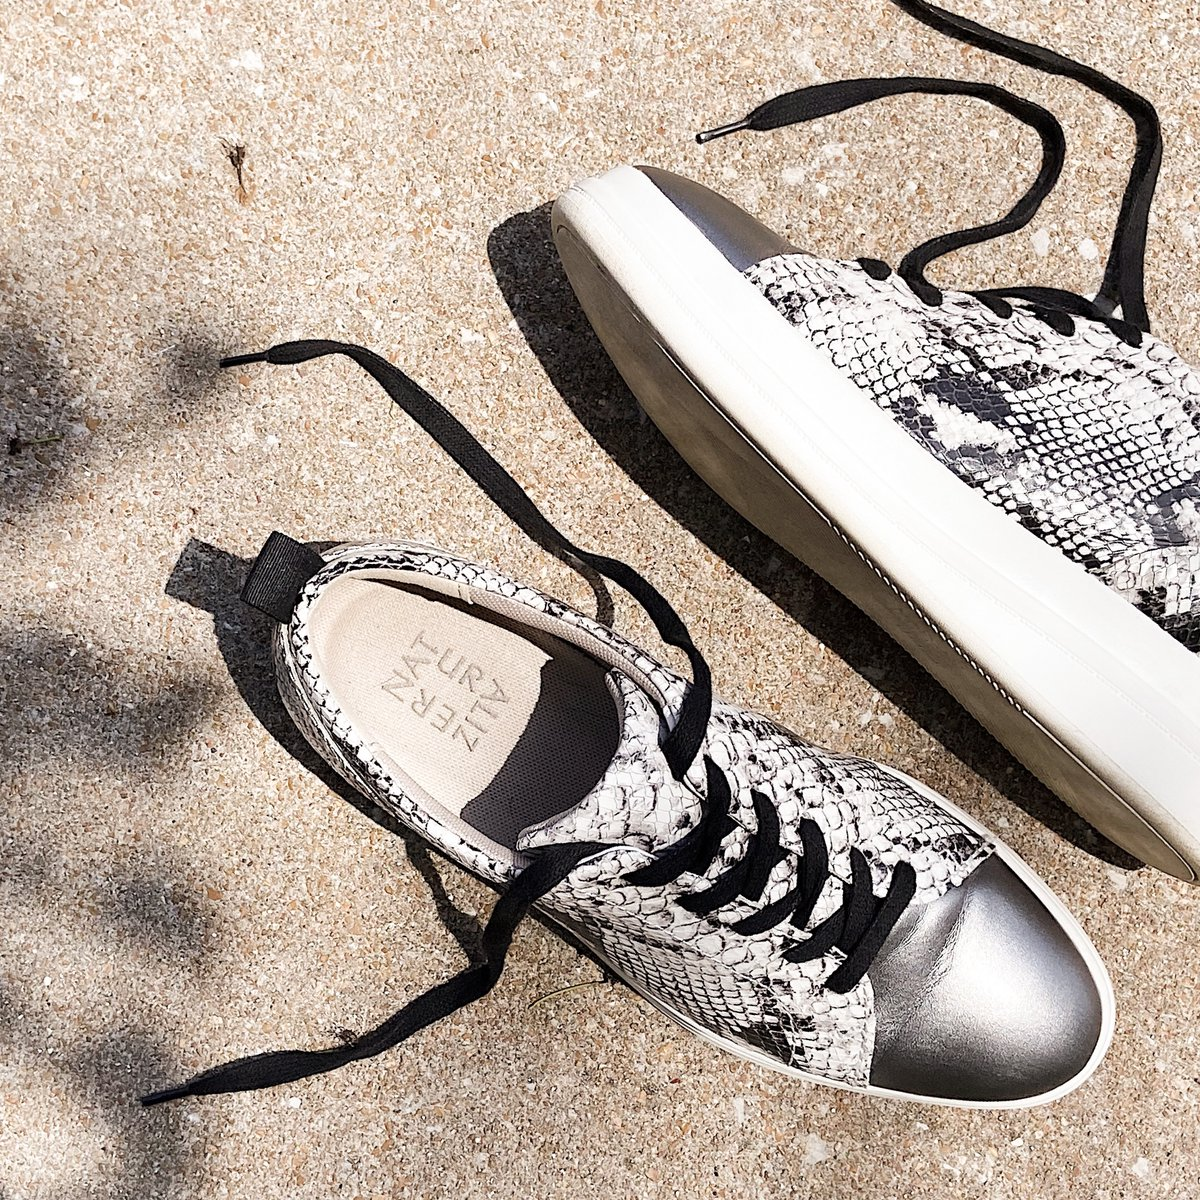 Sleek summer sneaks for your OOTD, today and every day.#Naturalizer  <!--td {border: 1px solid #ccc;}br {mso-data-placement:same-cell;}-->https://t.co/mstYekZgoa https://t.co/dHrOUzPLUS